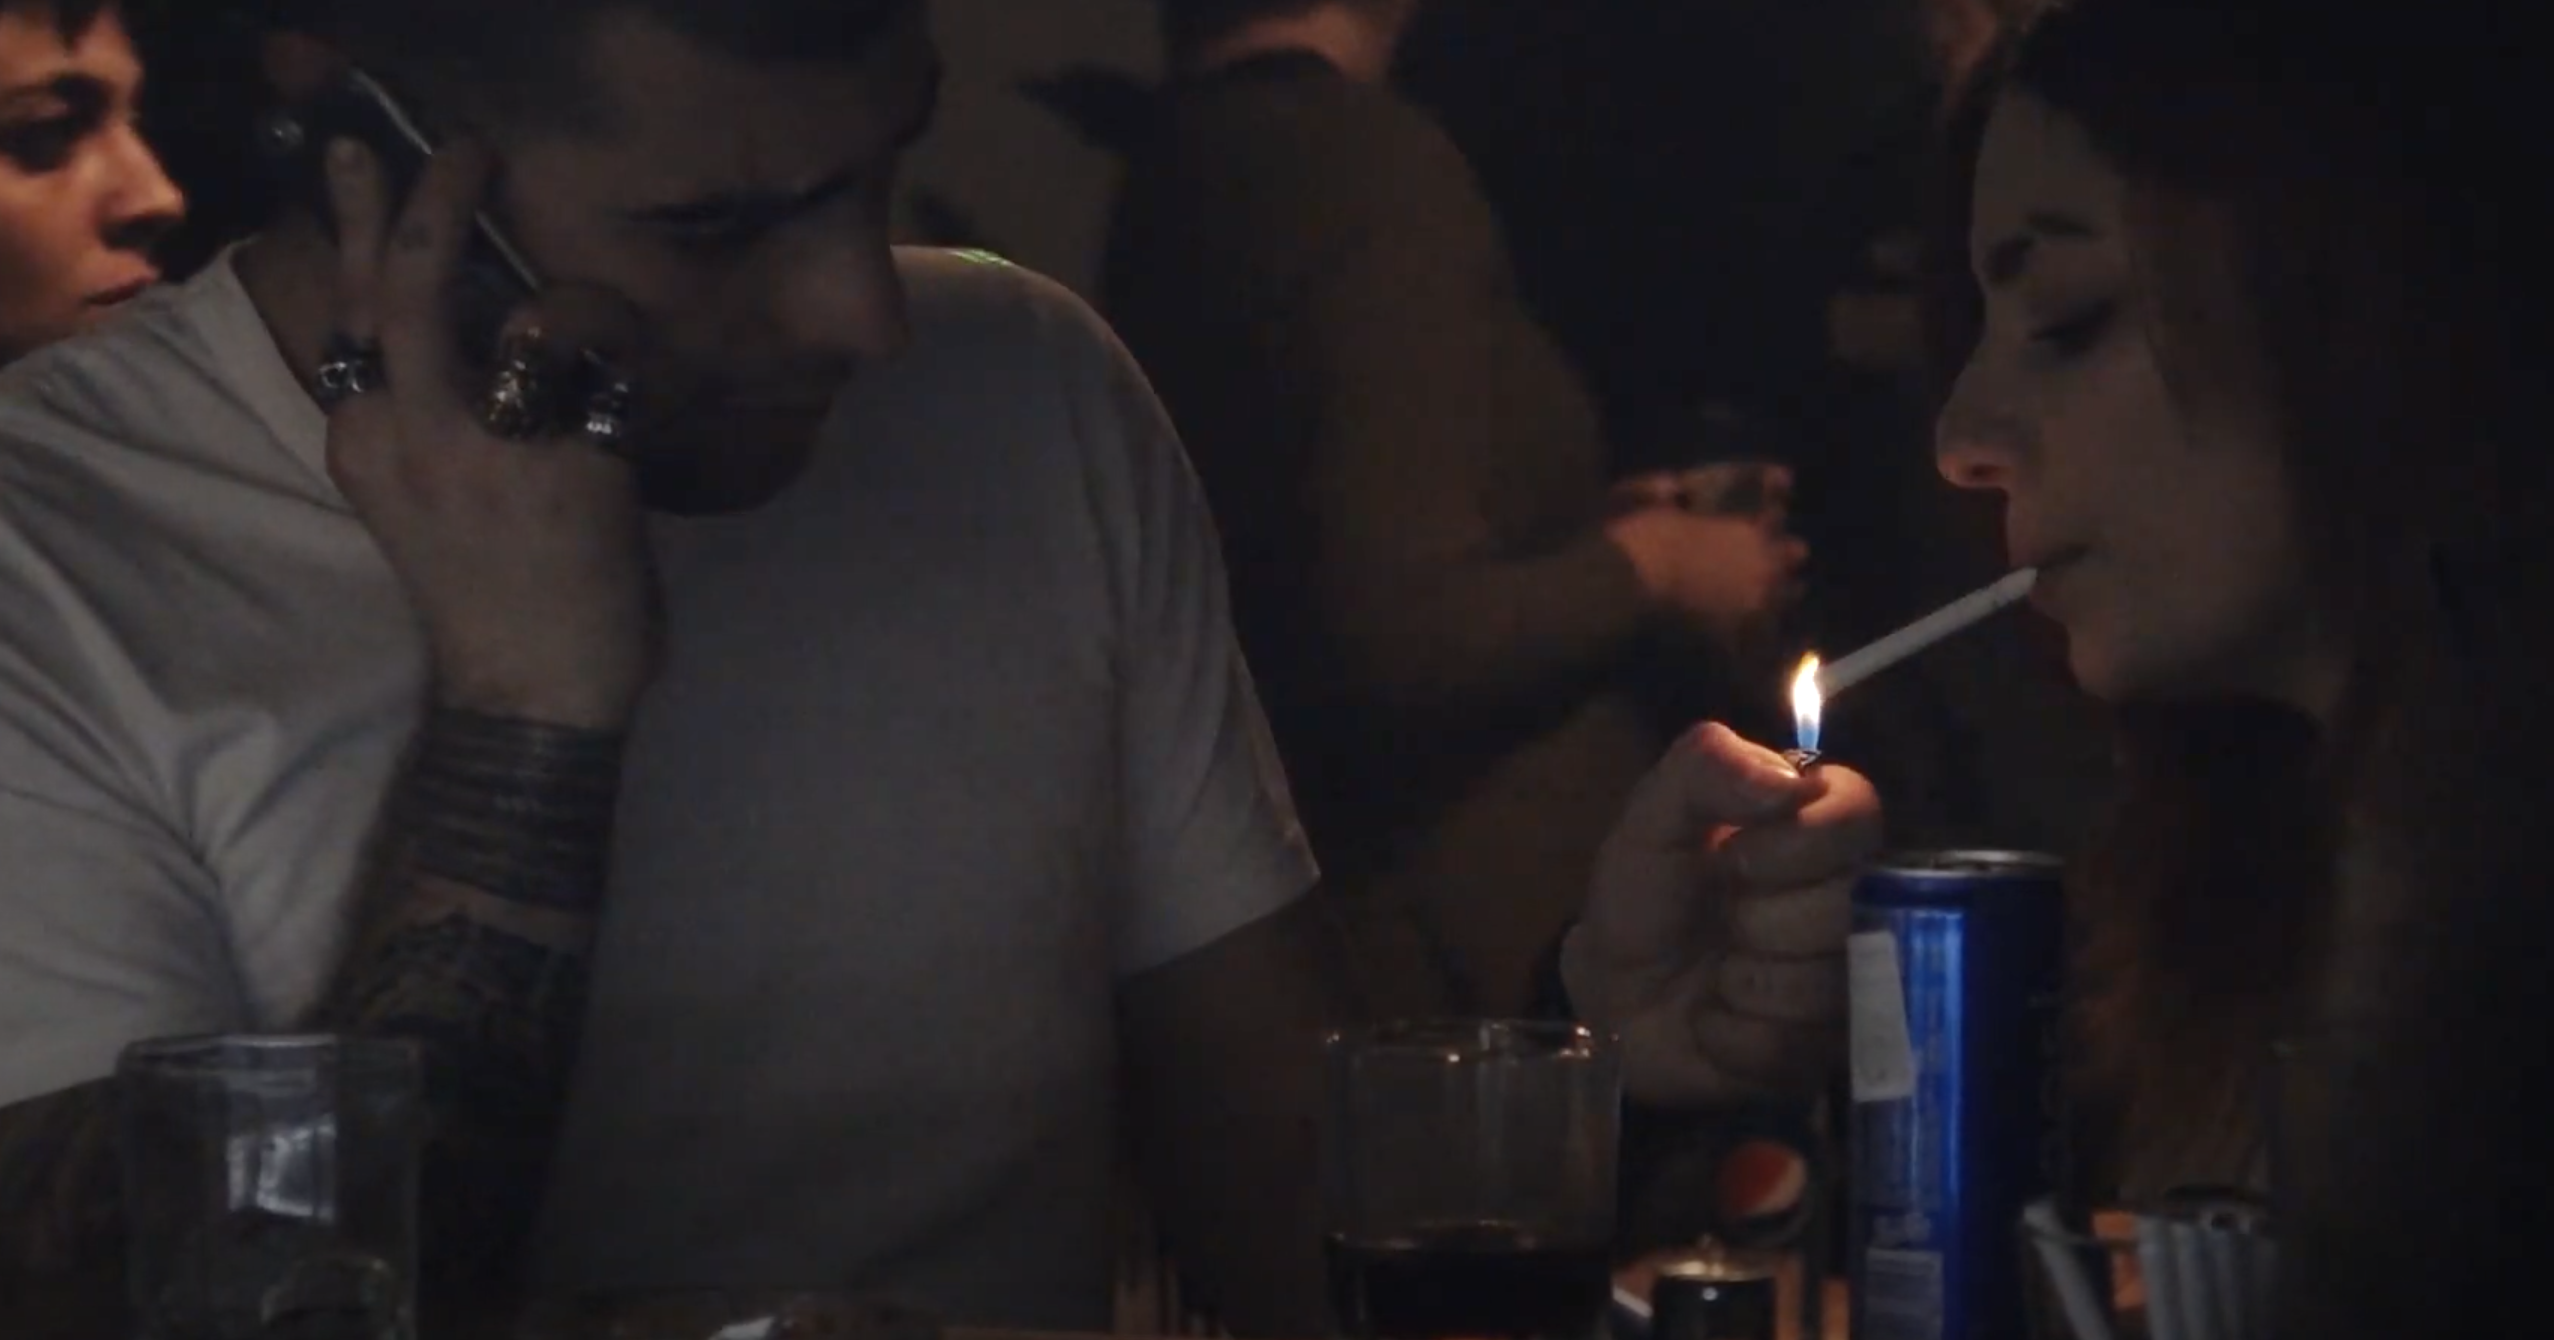 Someone gives their friend a light for their cigarette